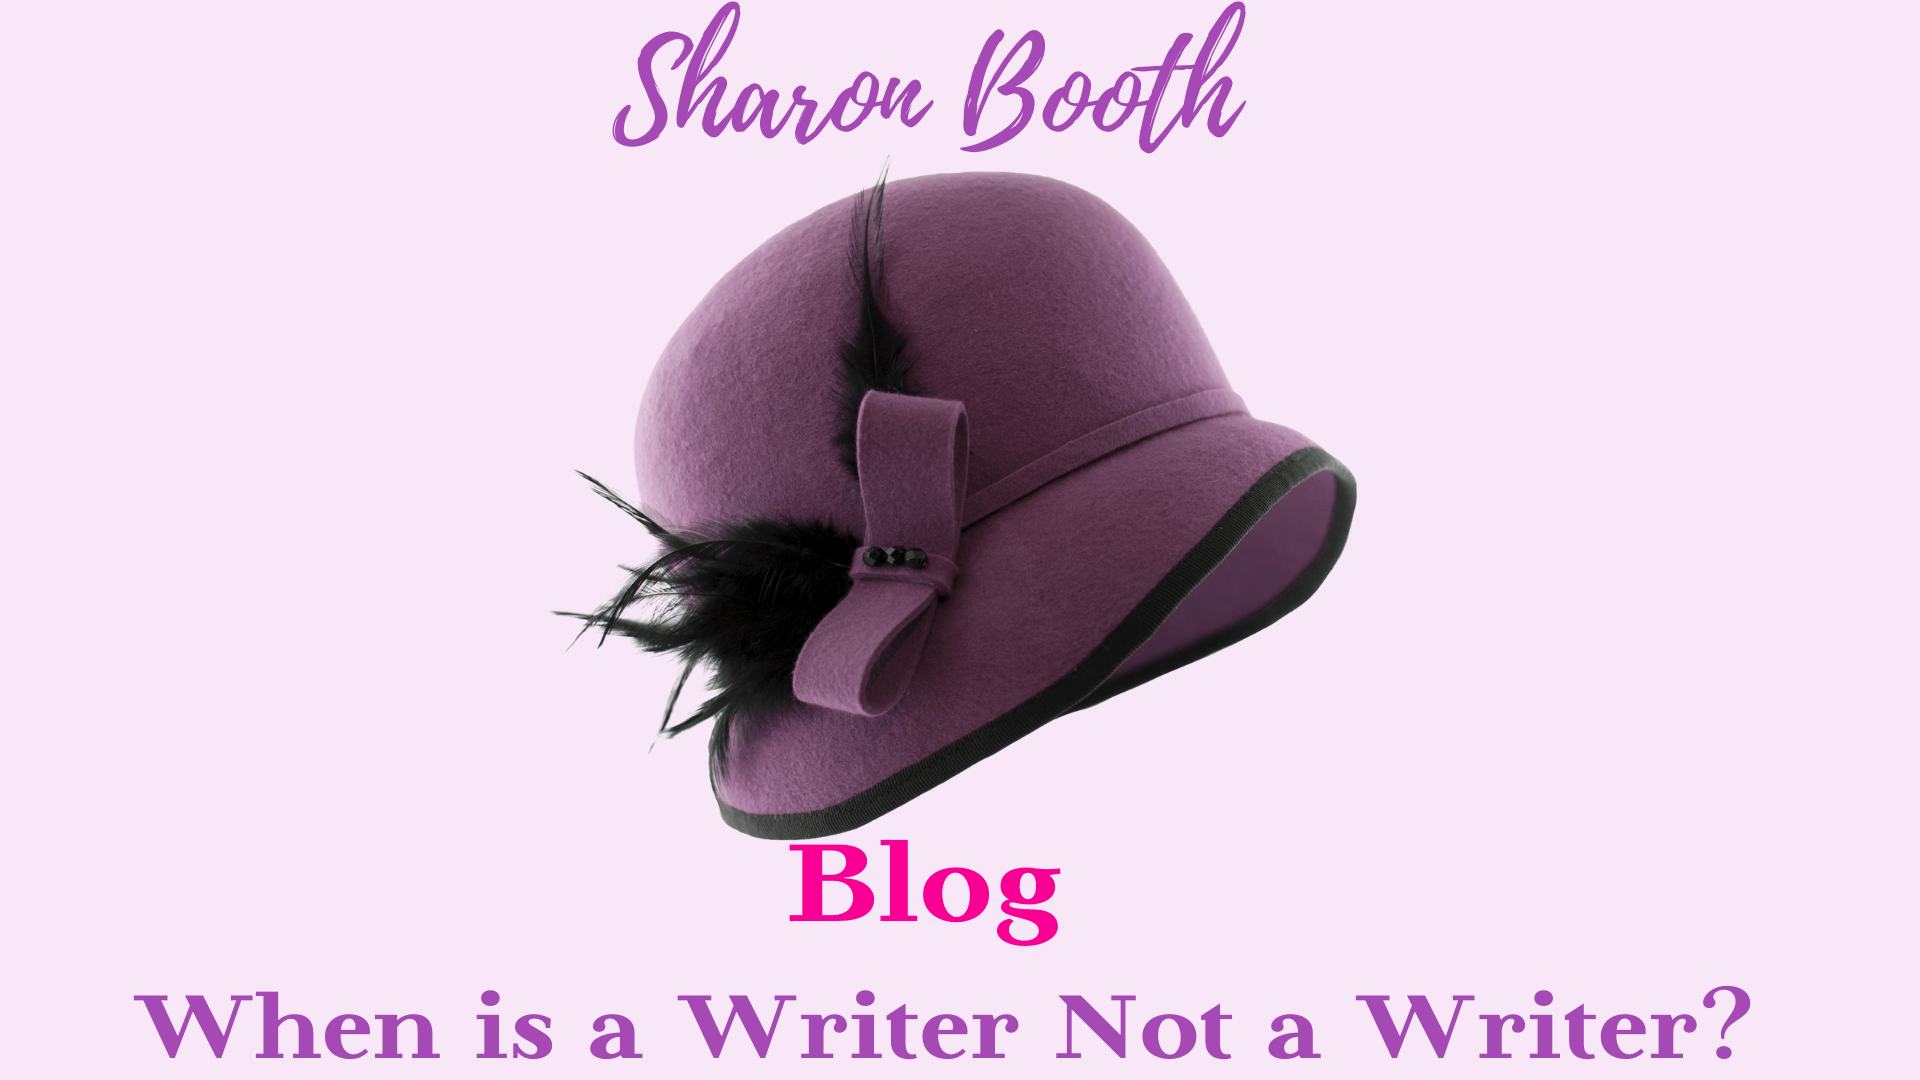 When is a Writer Not a Writer?